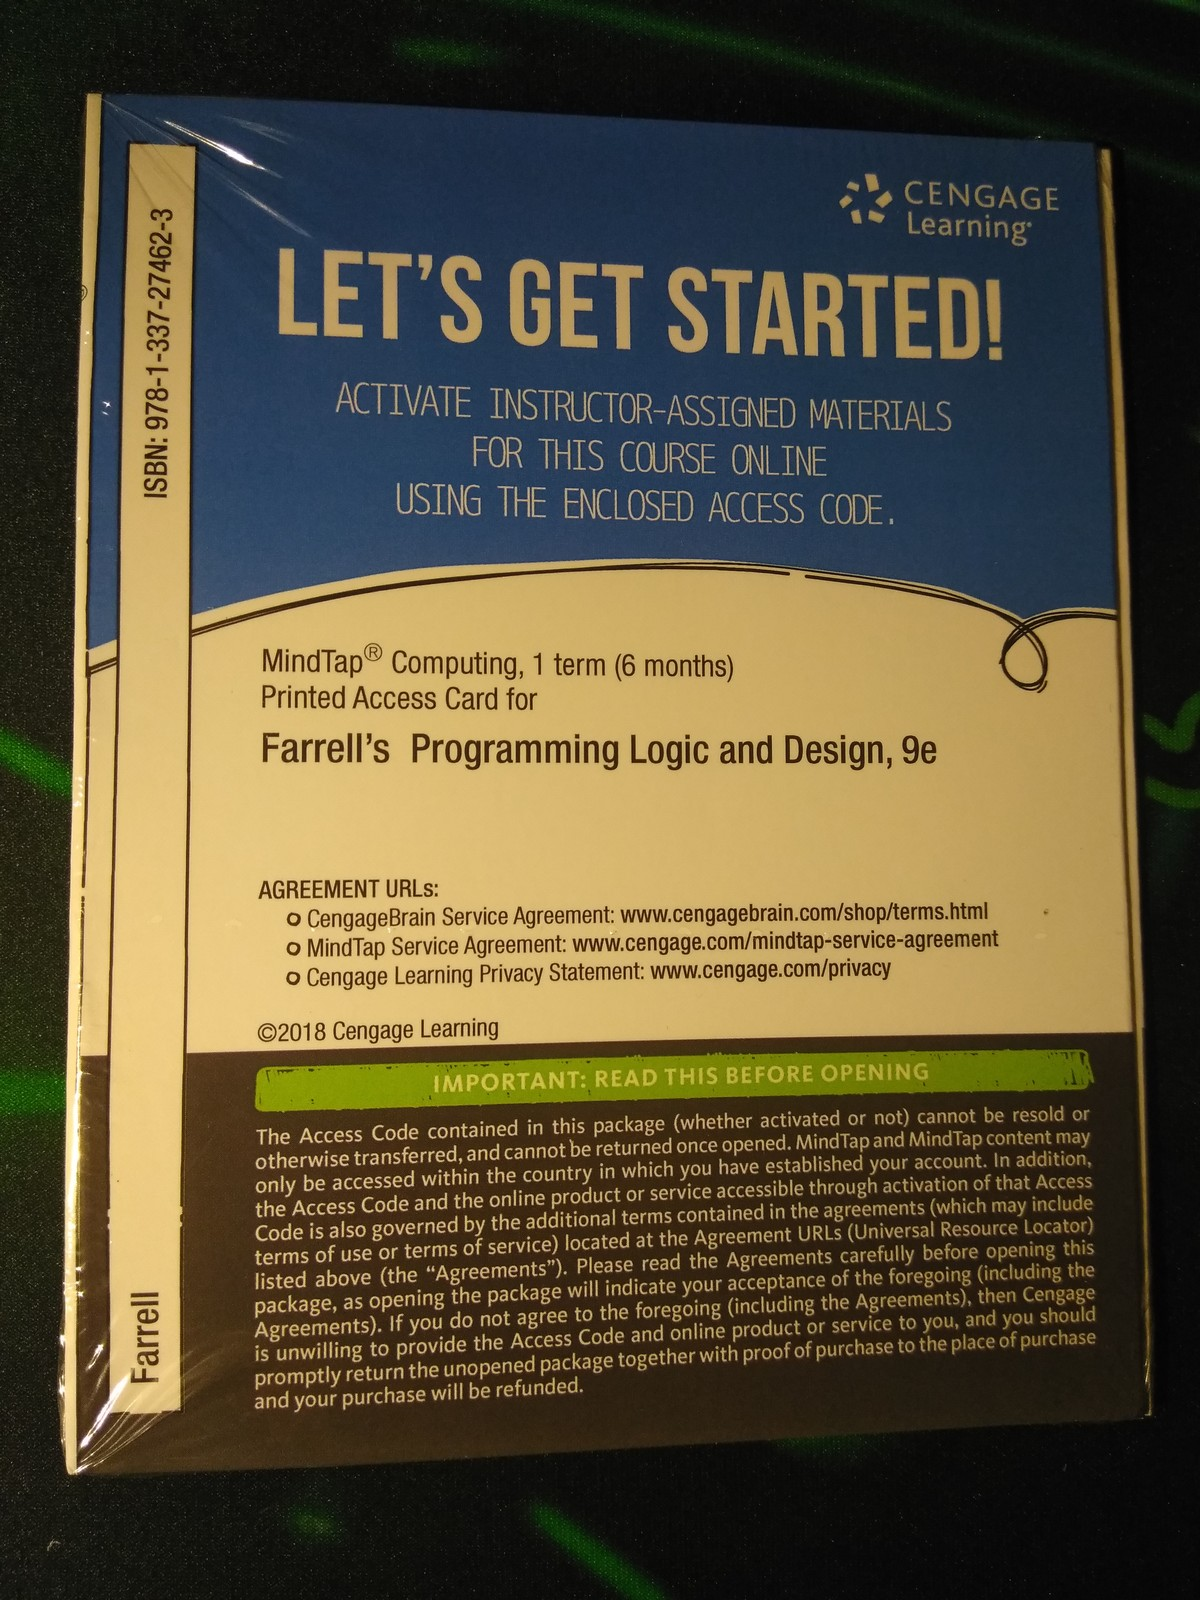 MindTap Printed Access Card Farrell's Programming Logic and Design 9th Edition